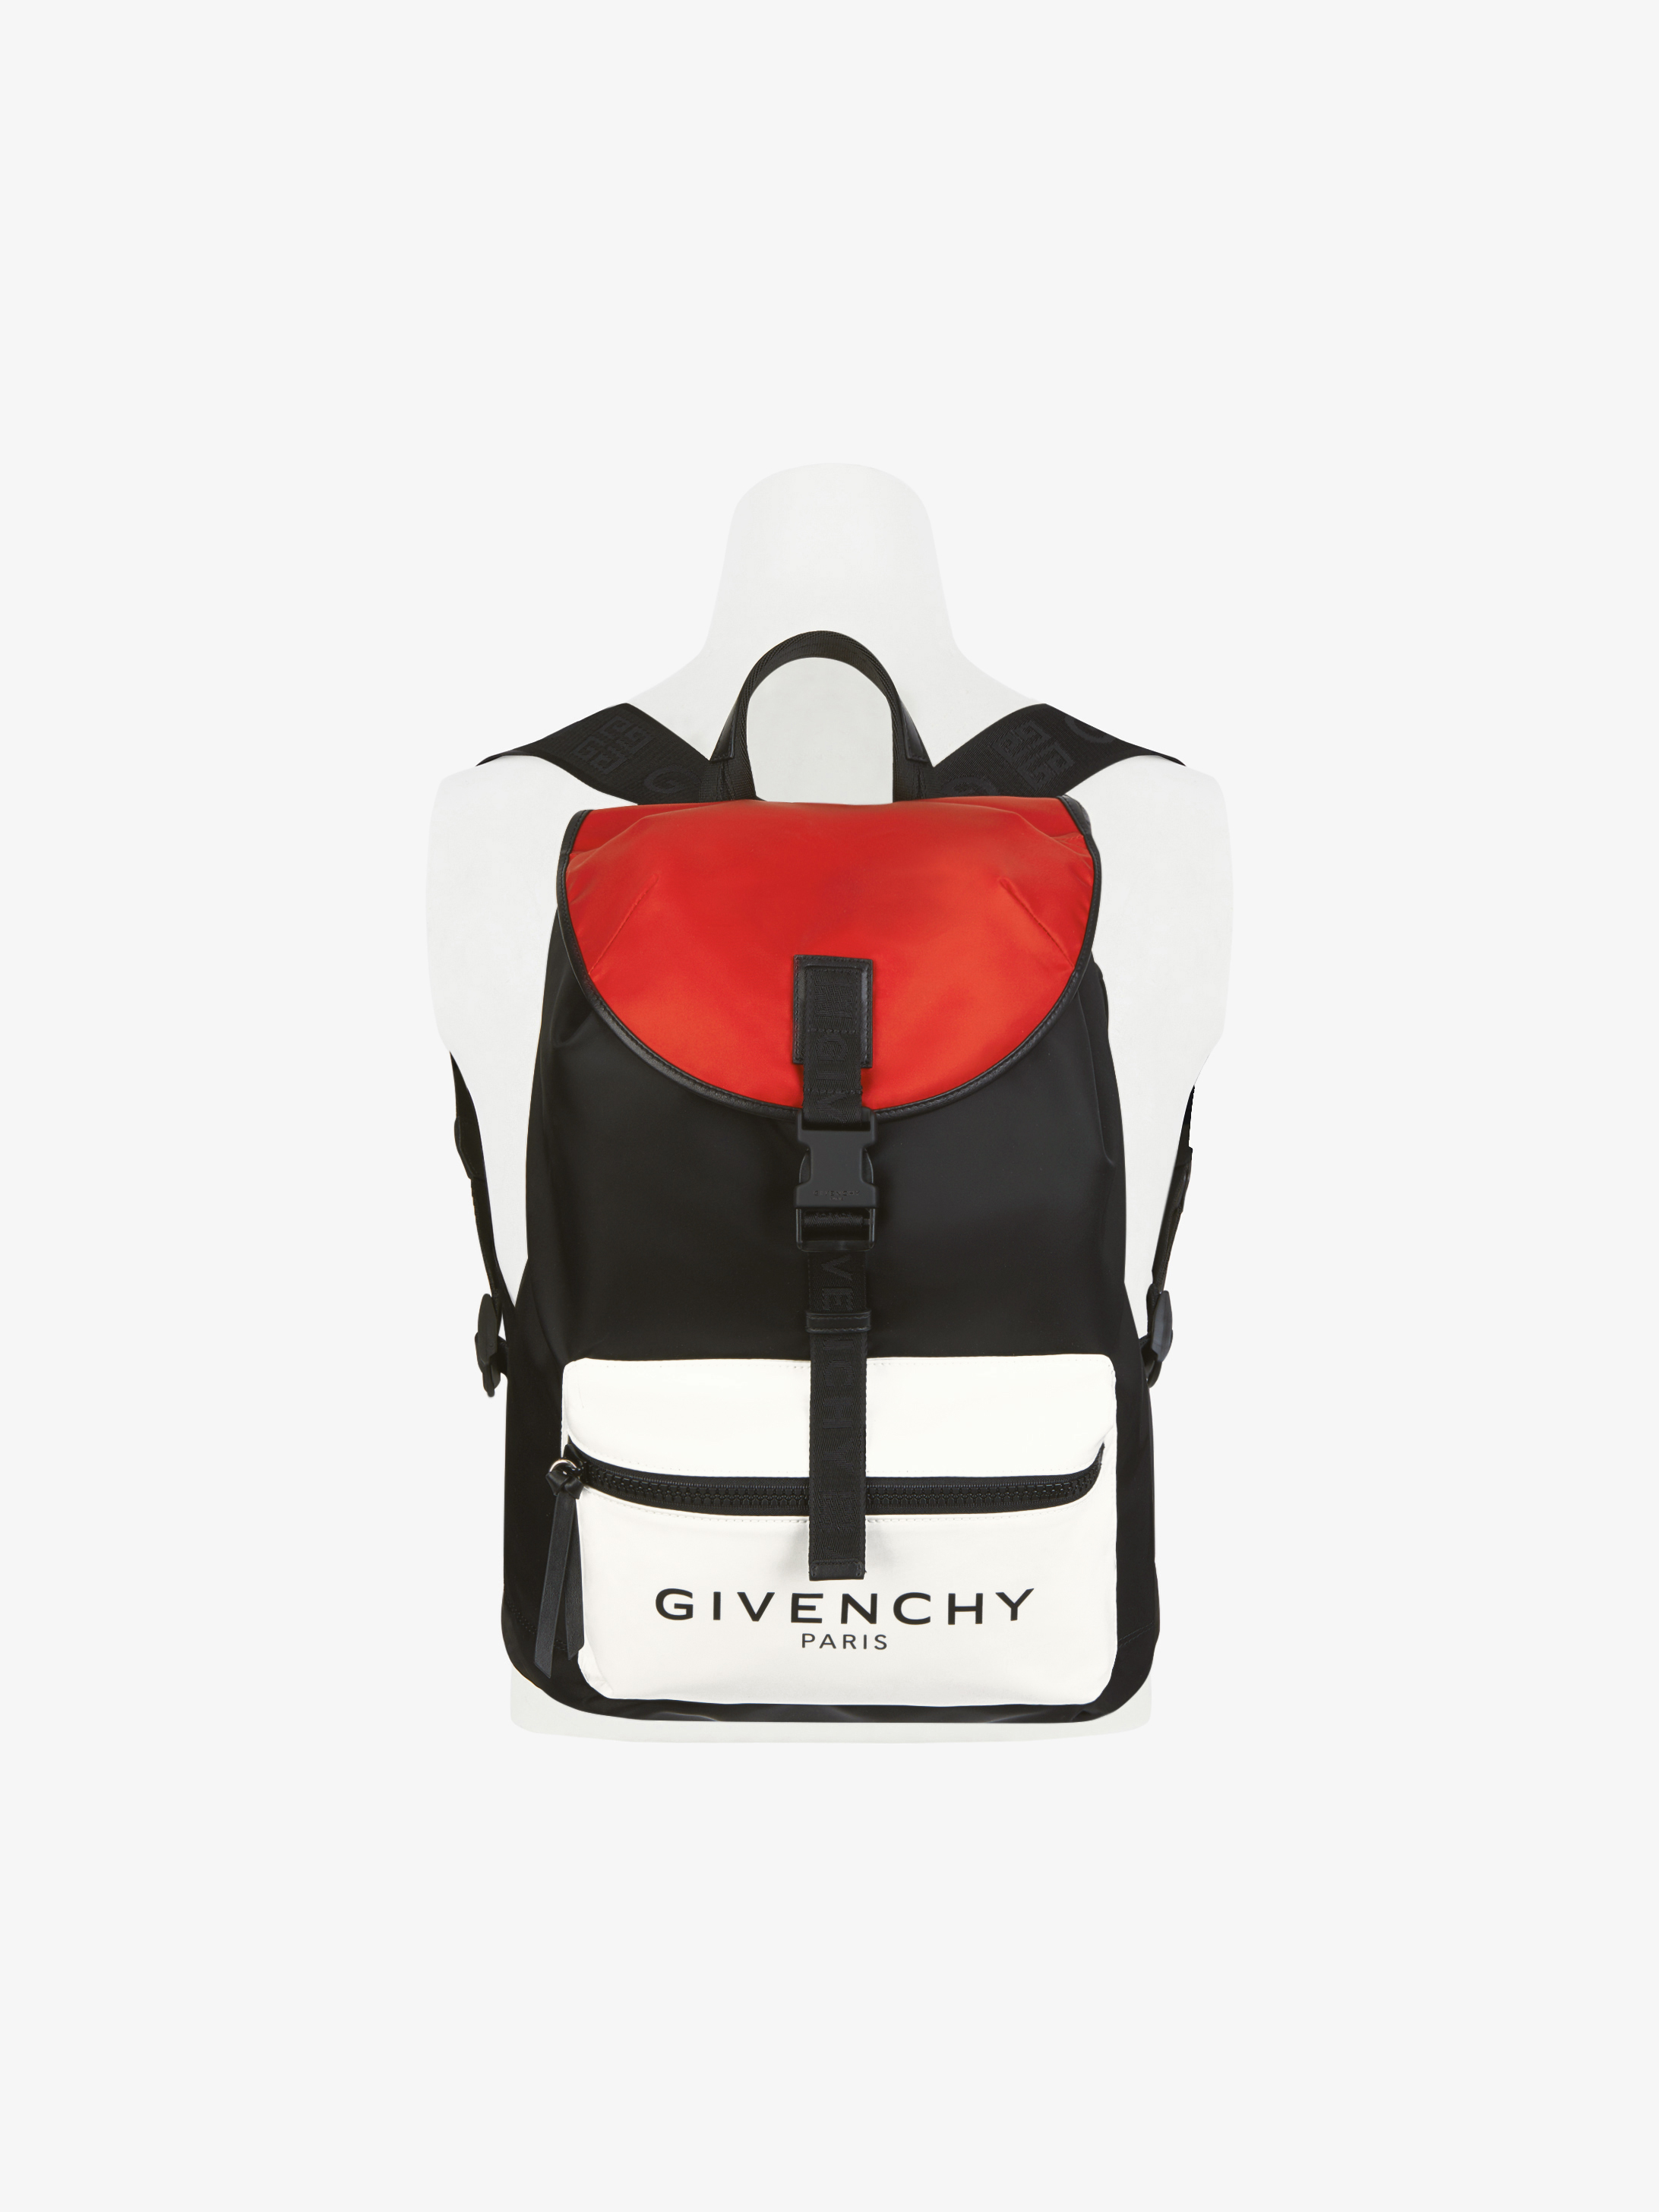 GIVENCHY PARIS tricolor backpack in nylon